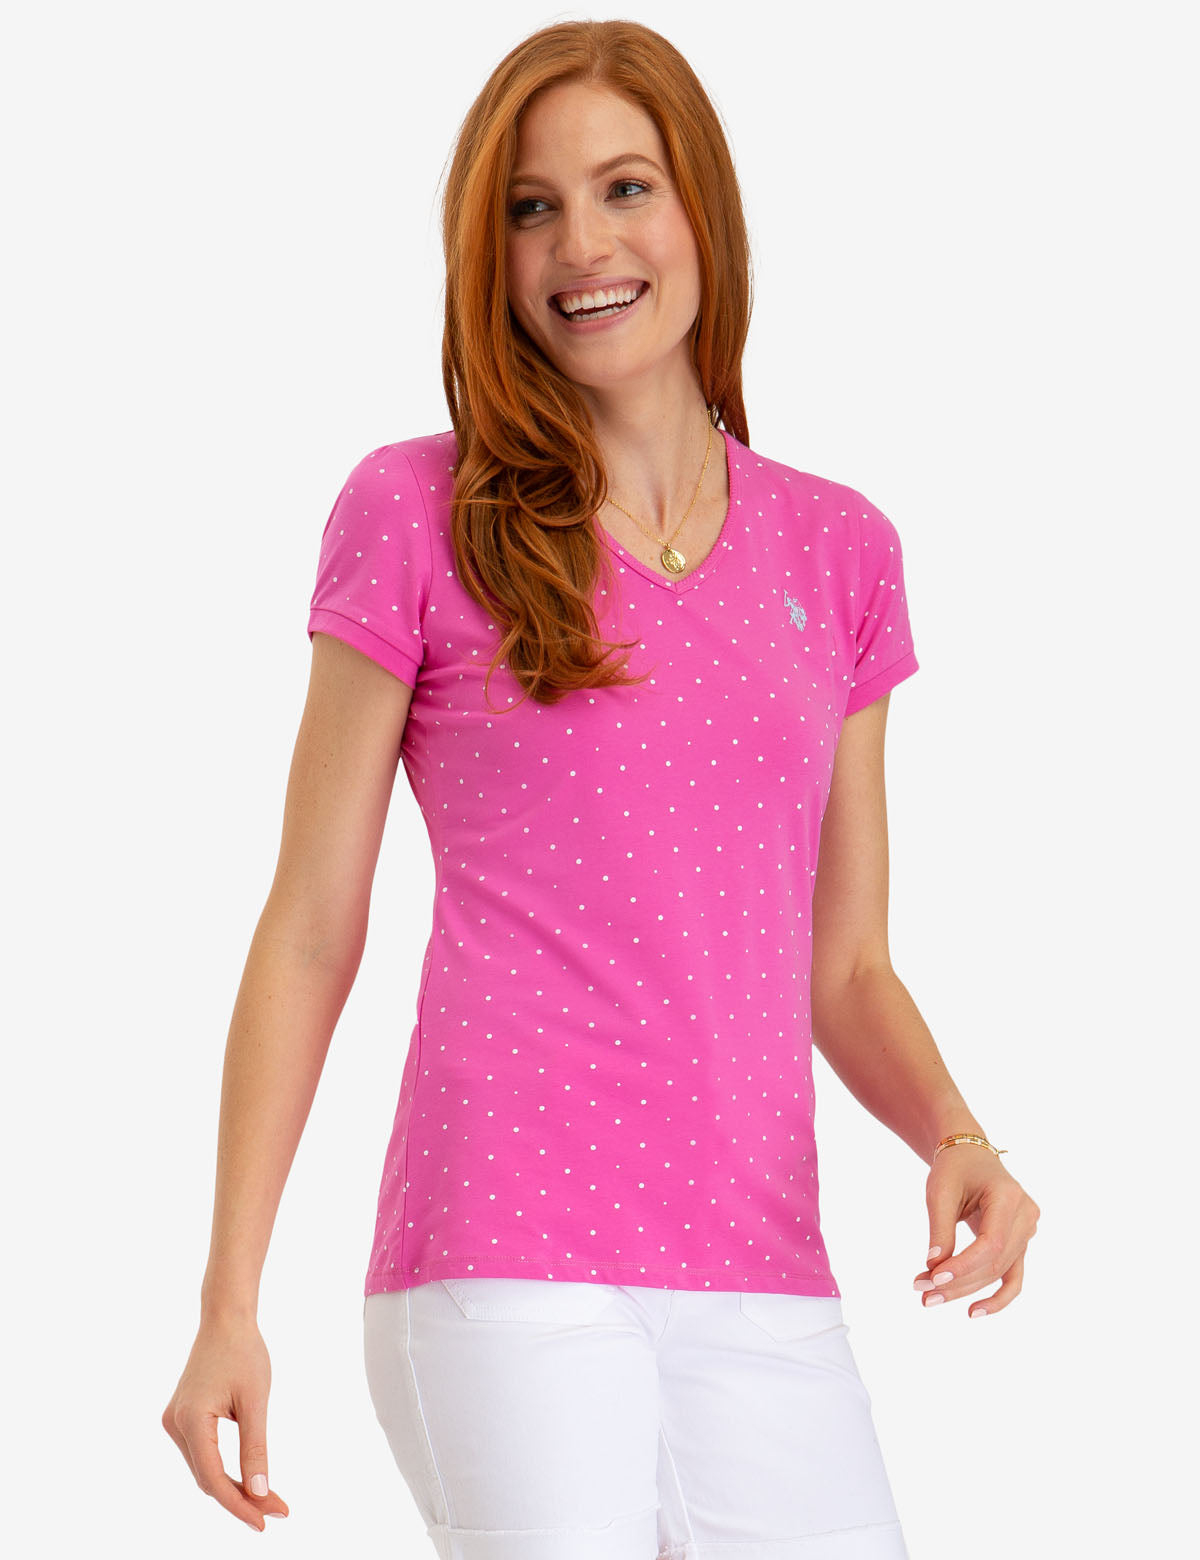 DOT V-NECK T-SHIRT - U.S. Polo Assn.